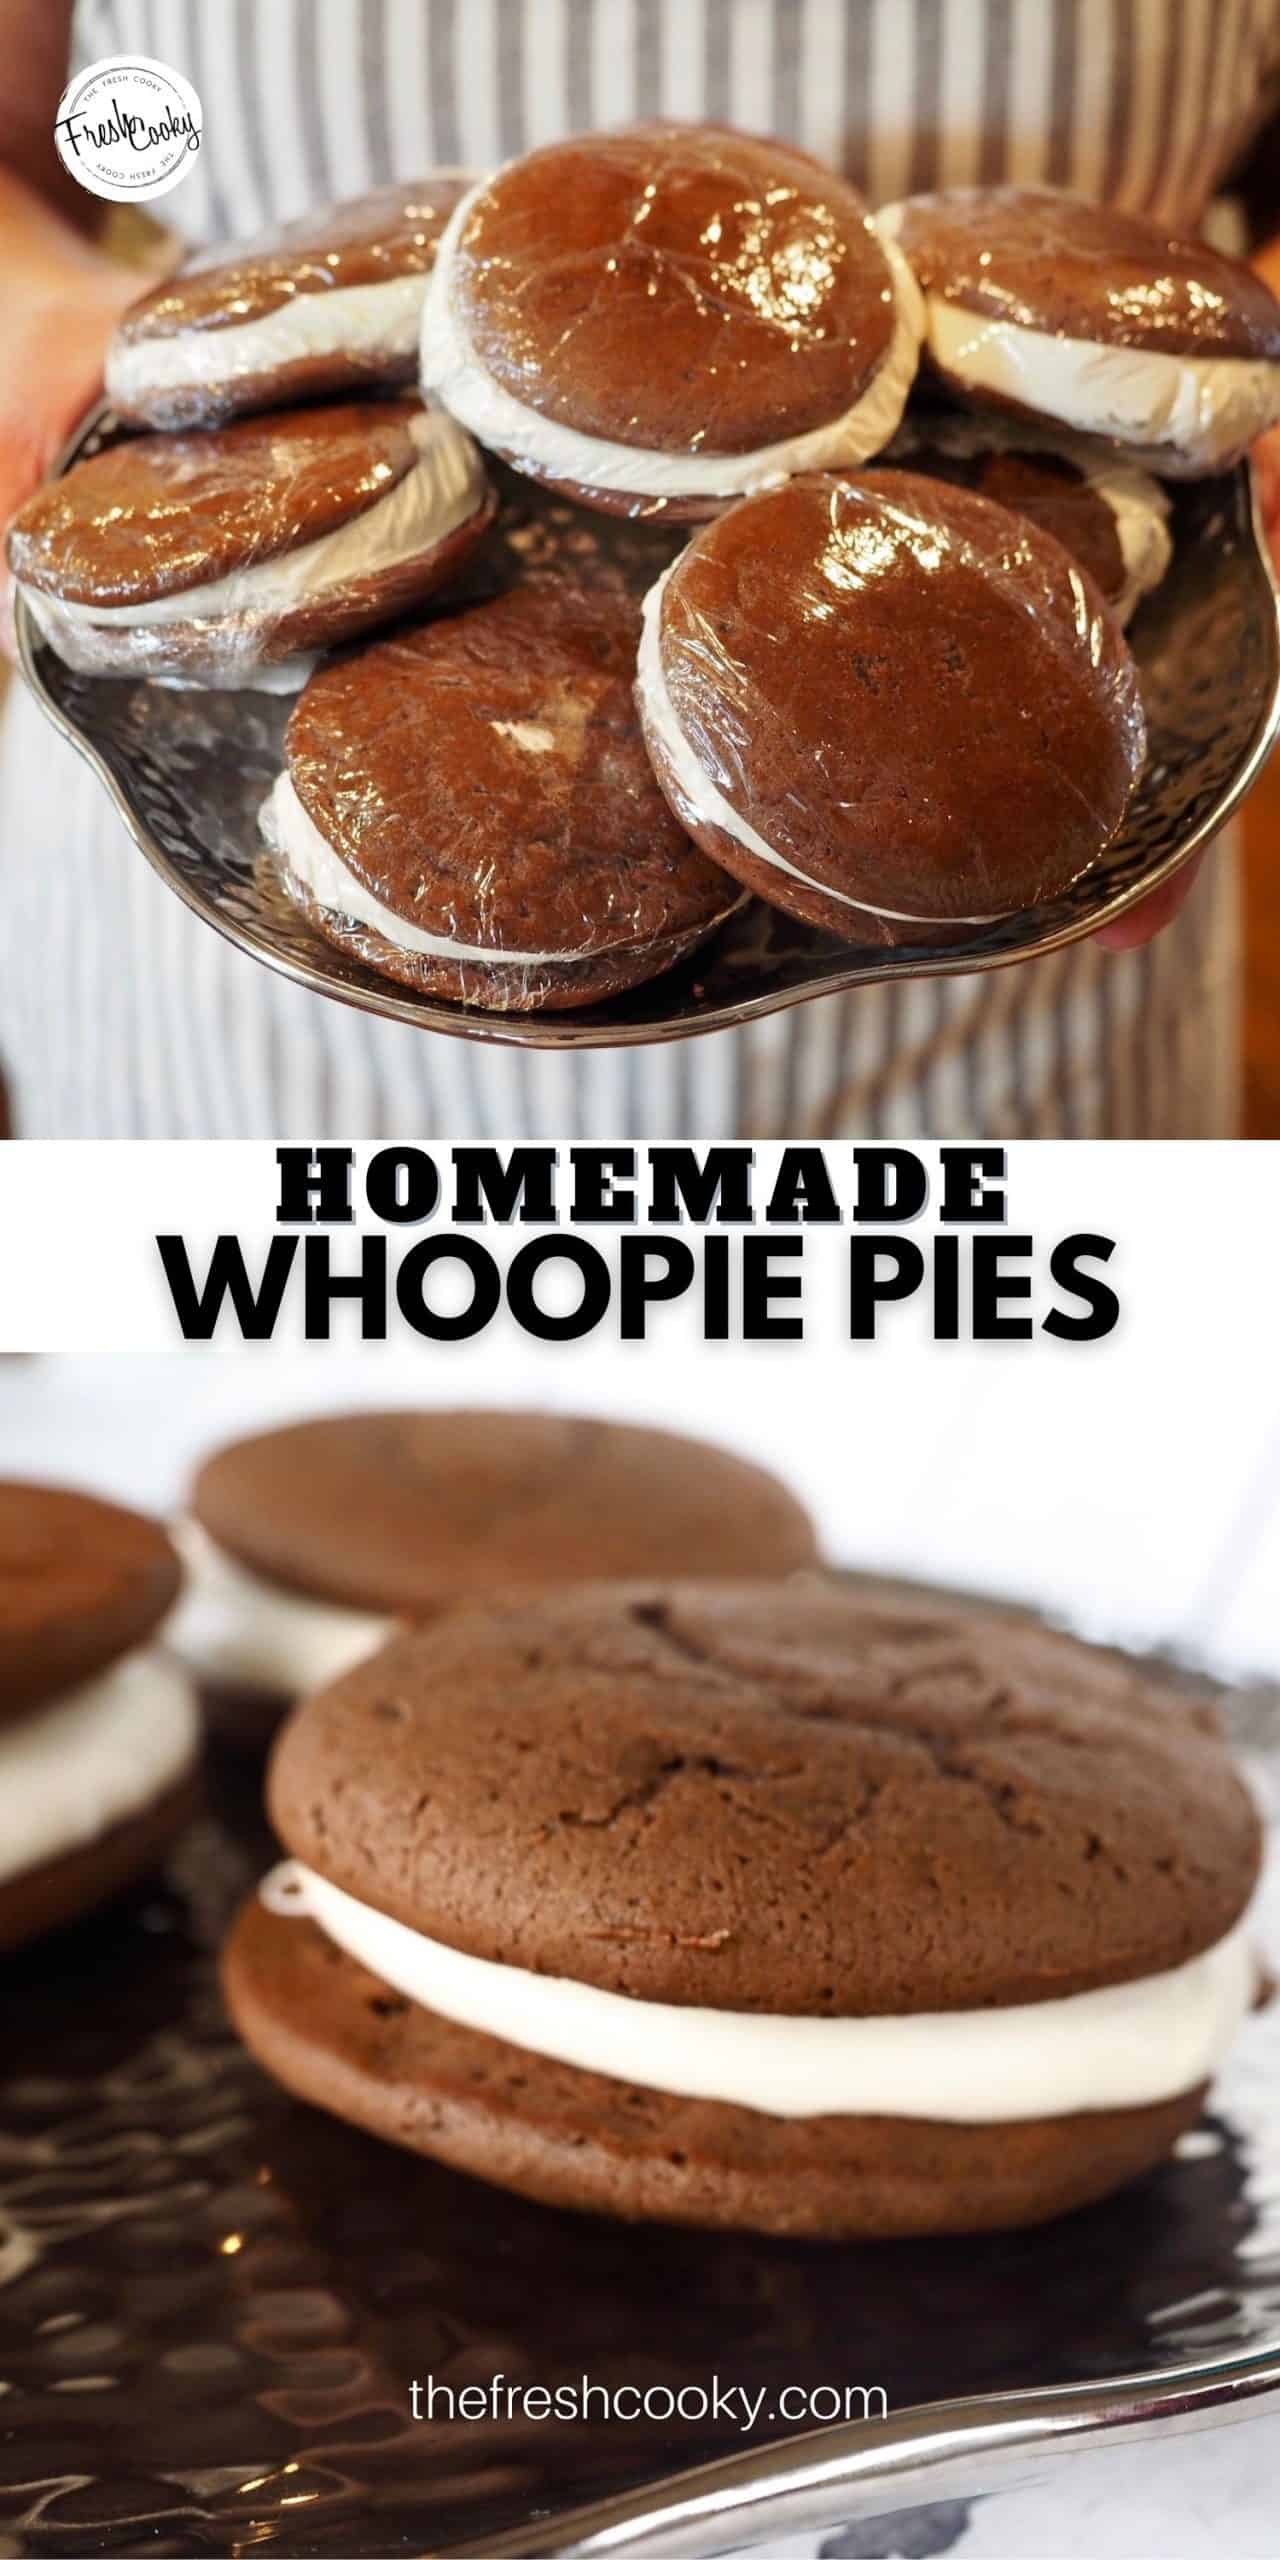 """How to Make Classic Chocolate New England (Maine) Whoopie Pies are the best sandwich cookie ever and they are easy! Cakey """"pies"""" sandwiching a marshmallow buttercream center. These are a Christmas tradition in our house. And they travel really well! Amish or Maine, these are authentic whoopie pies, pop in the freezer too! #thefreshcooky #homemade  via @thefreshcooky"""